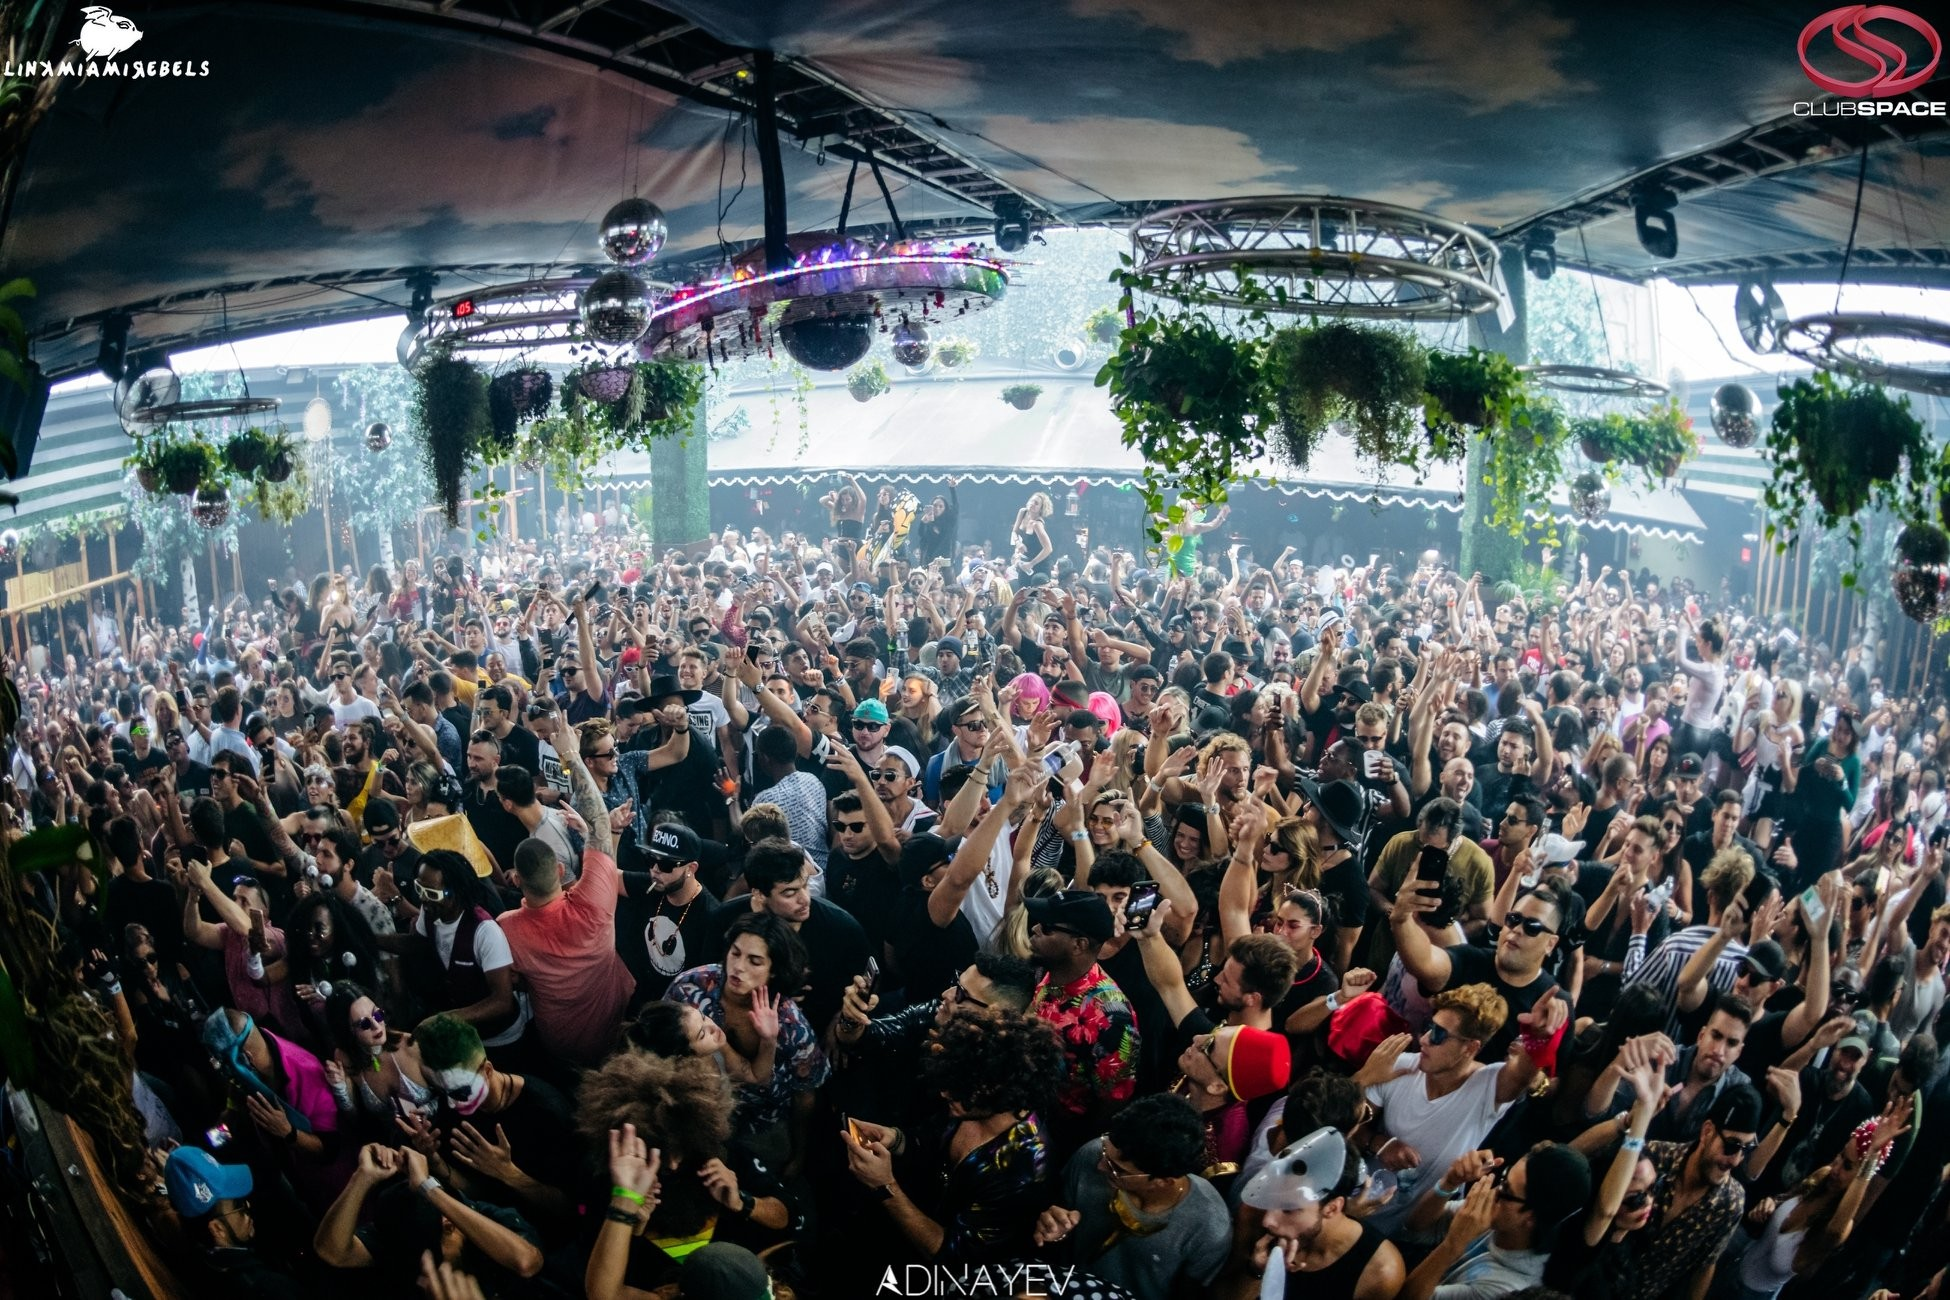 Space Invaders present Saturday MMW 2019 Club Space Miami [from 30 to 31 March]